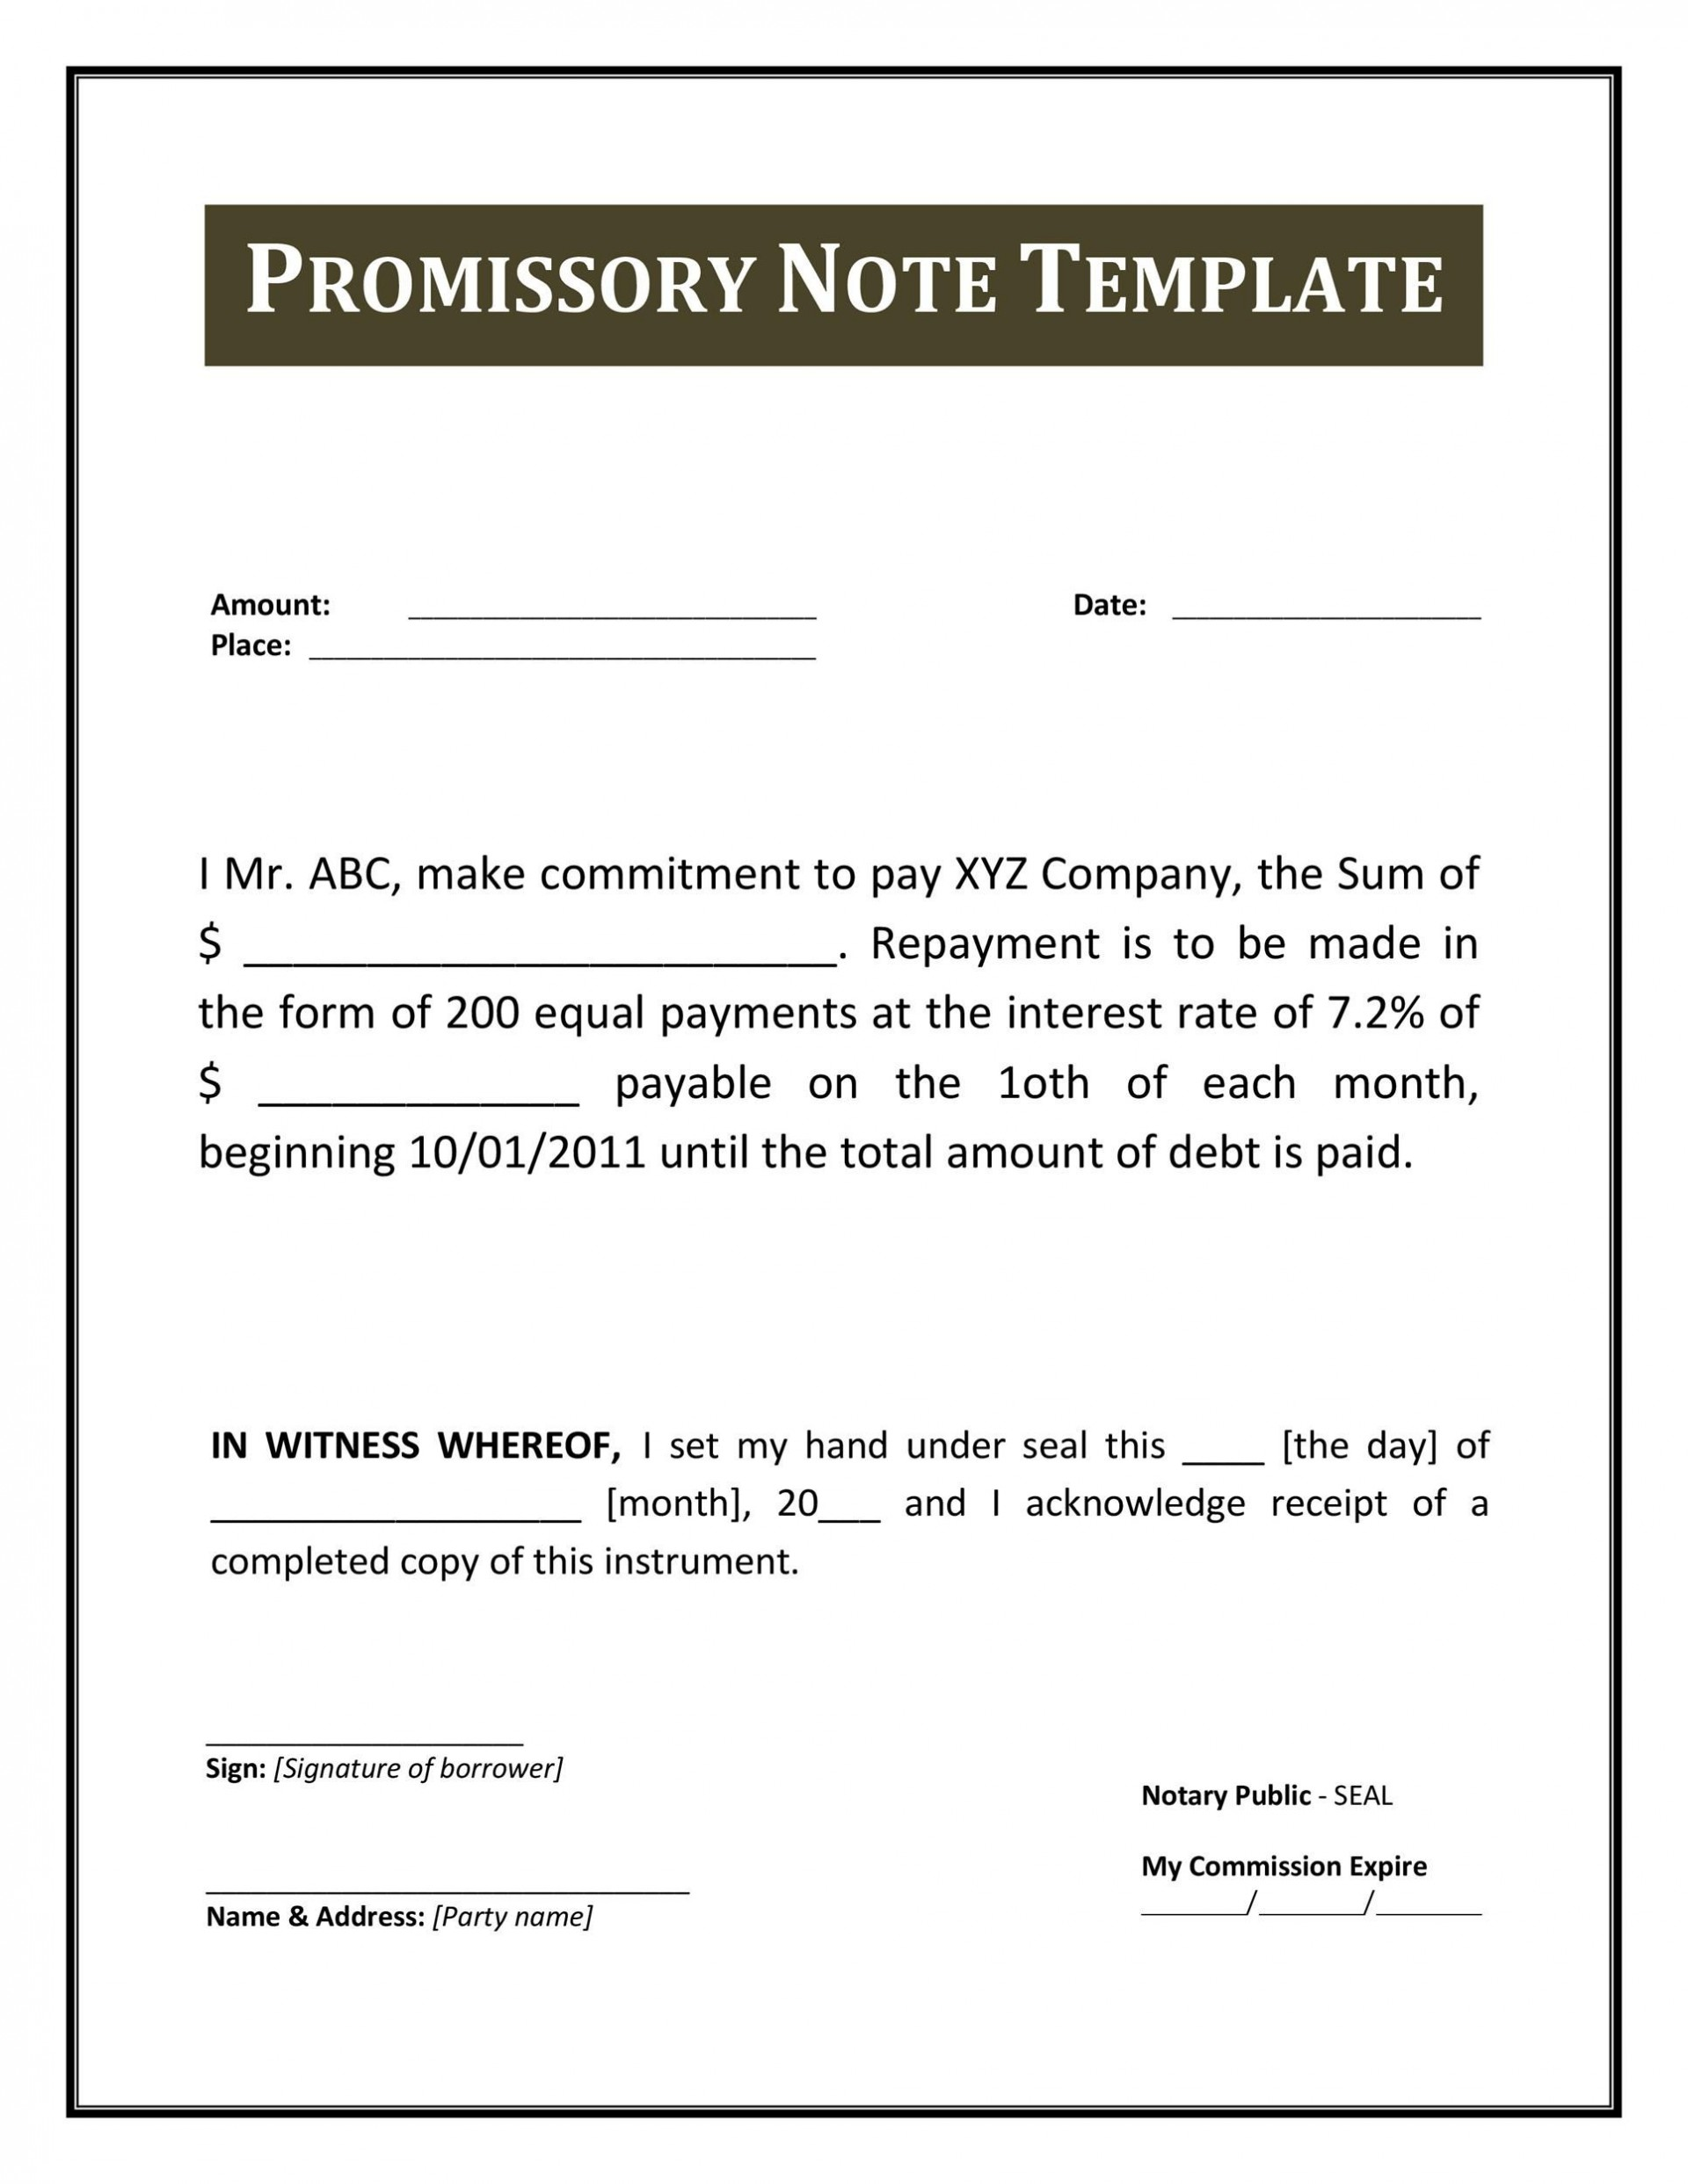 007 Unbelievable Template For Promissory Note Design  Free Personal Loan Uk1920